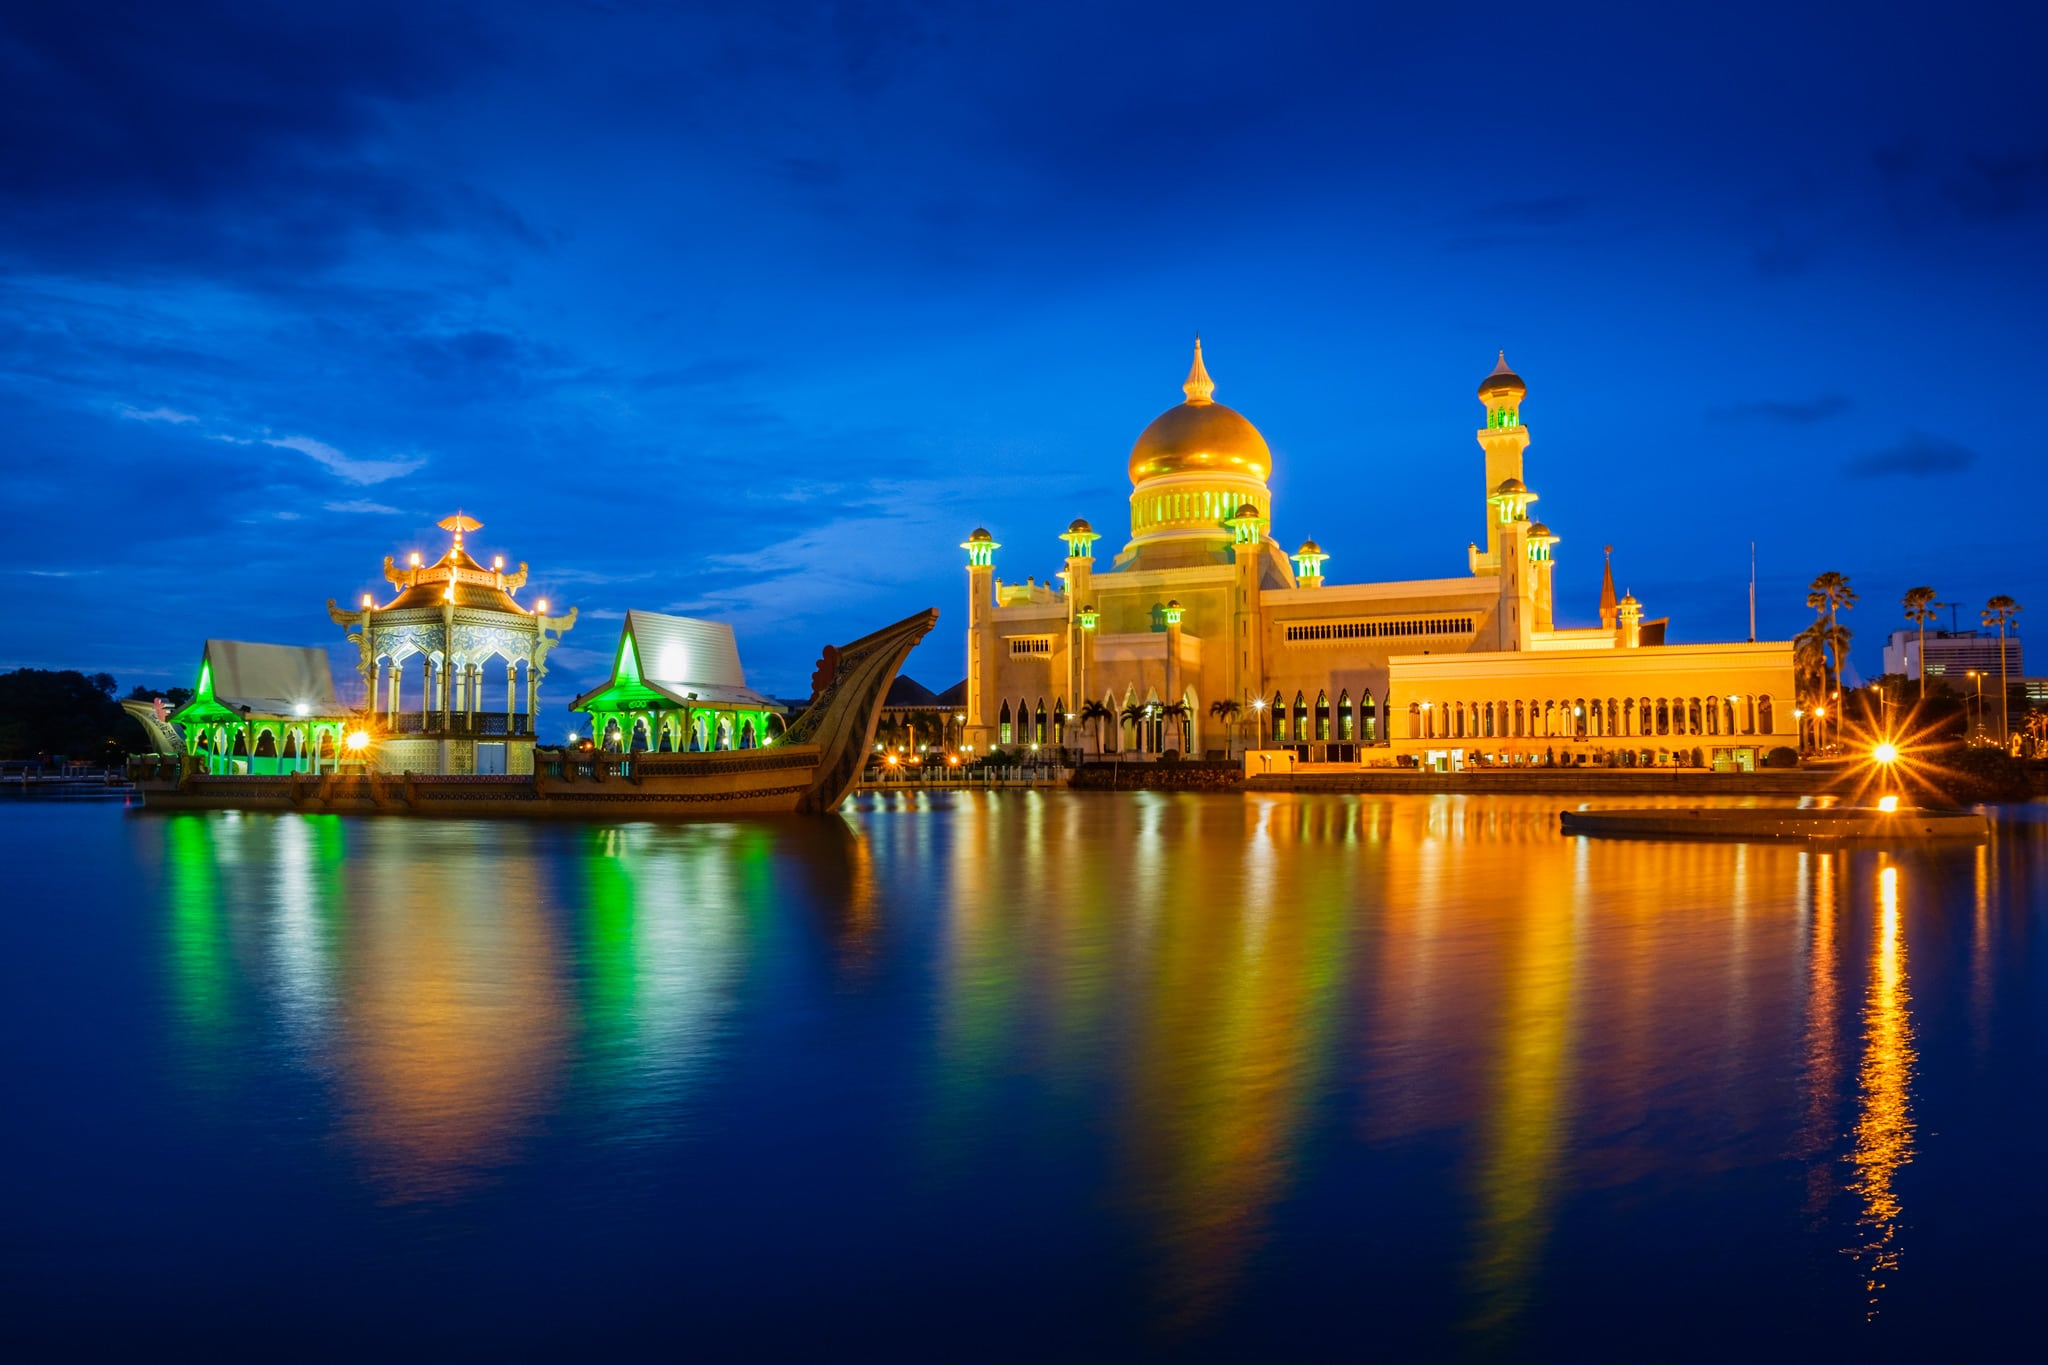 Sultan Omar Ali Saifuddien Mosque in the evening. Bandar Seri Begawan, Brunei. Water of the pond and lights reflection look smooth because of the long exposure.